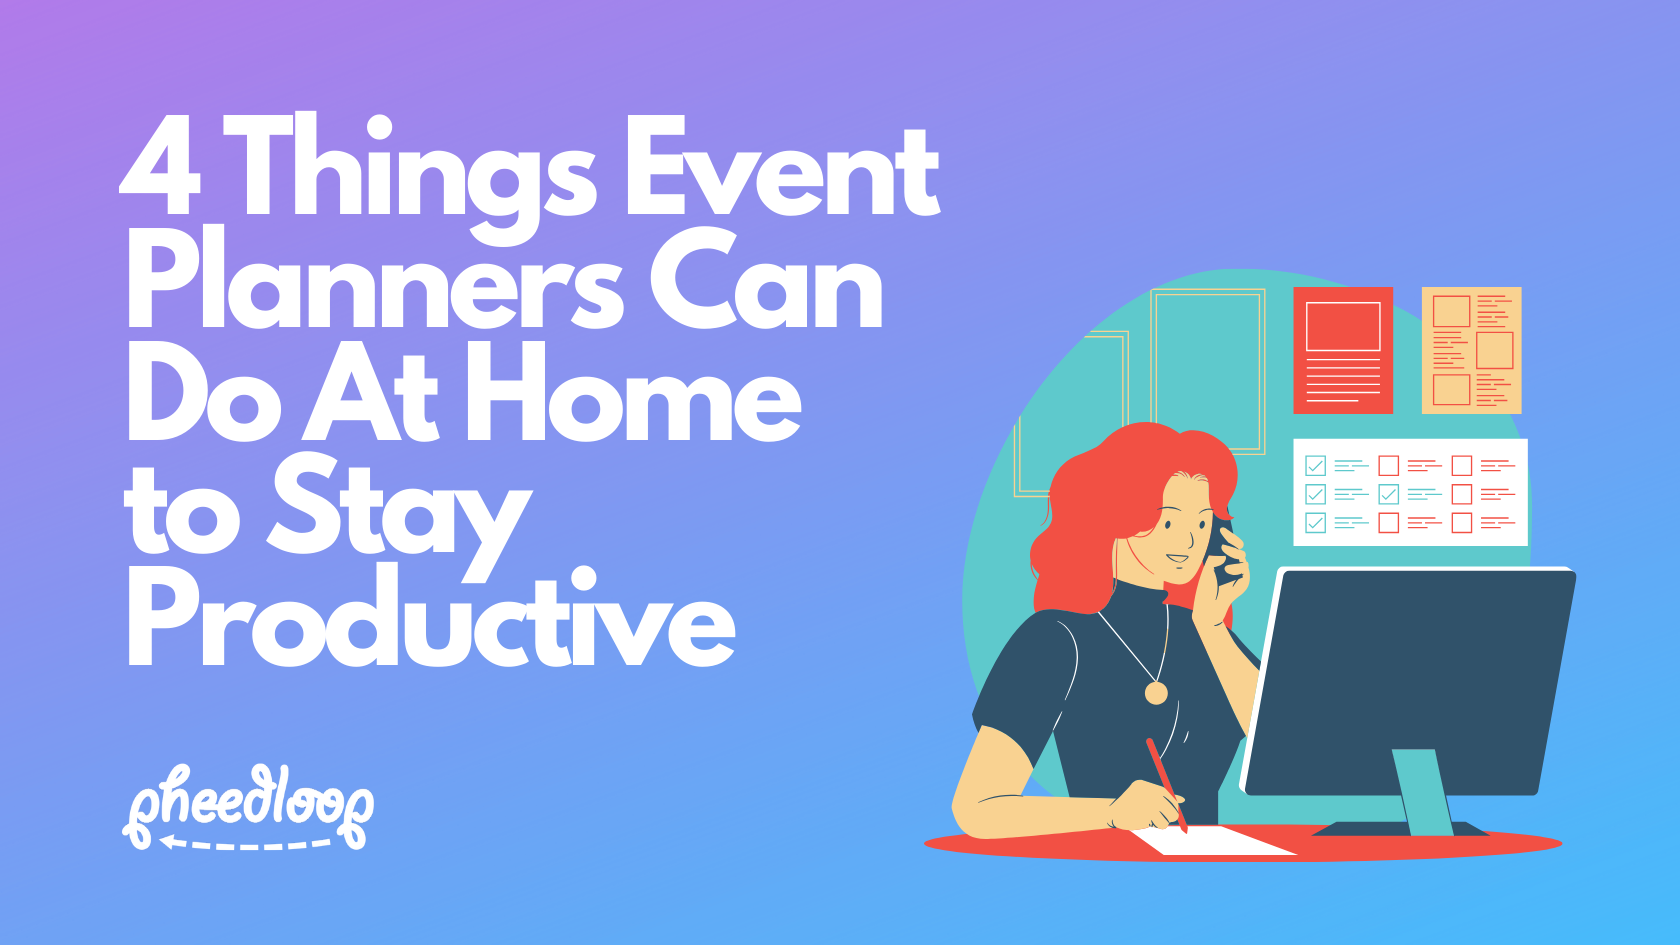 There's no denying it at this point, the global pandemic caused by the coronavirus will have long-term effects on the events industry. So if you're at home right now, what are some things you can do to level up, and make the most of this time? Here are 4 tips we have for you!